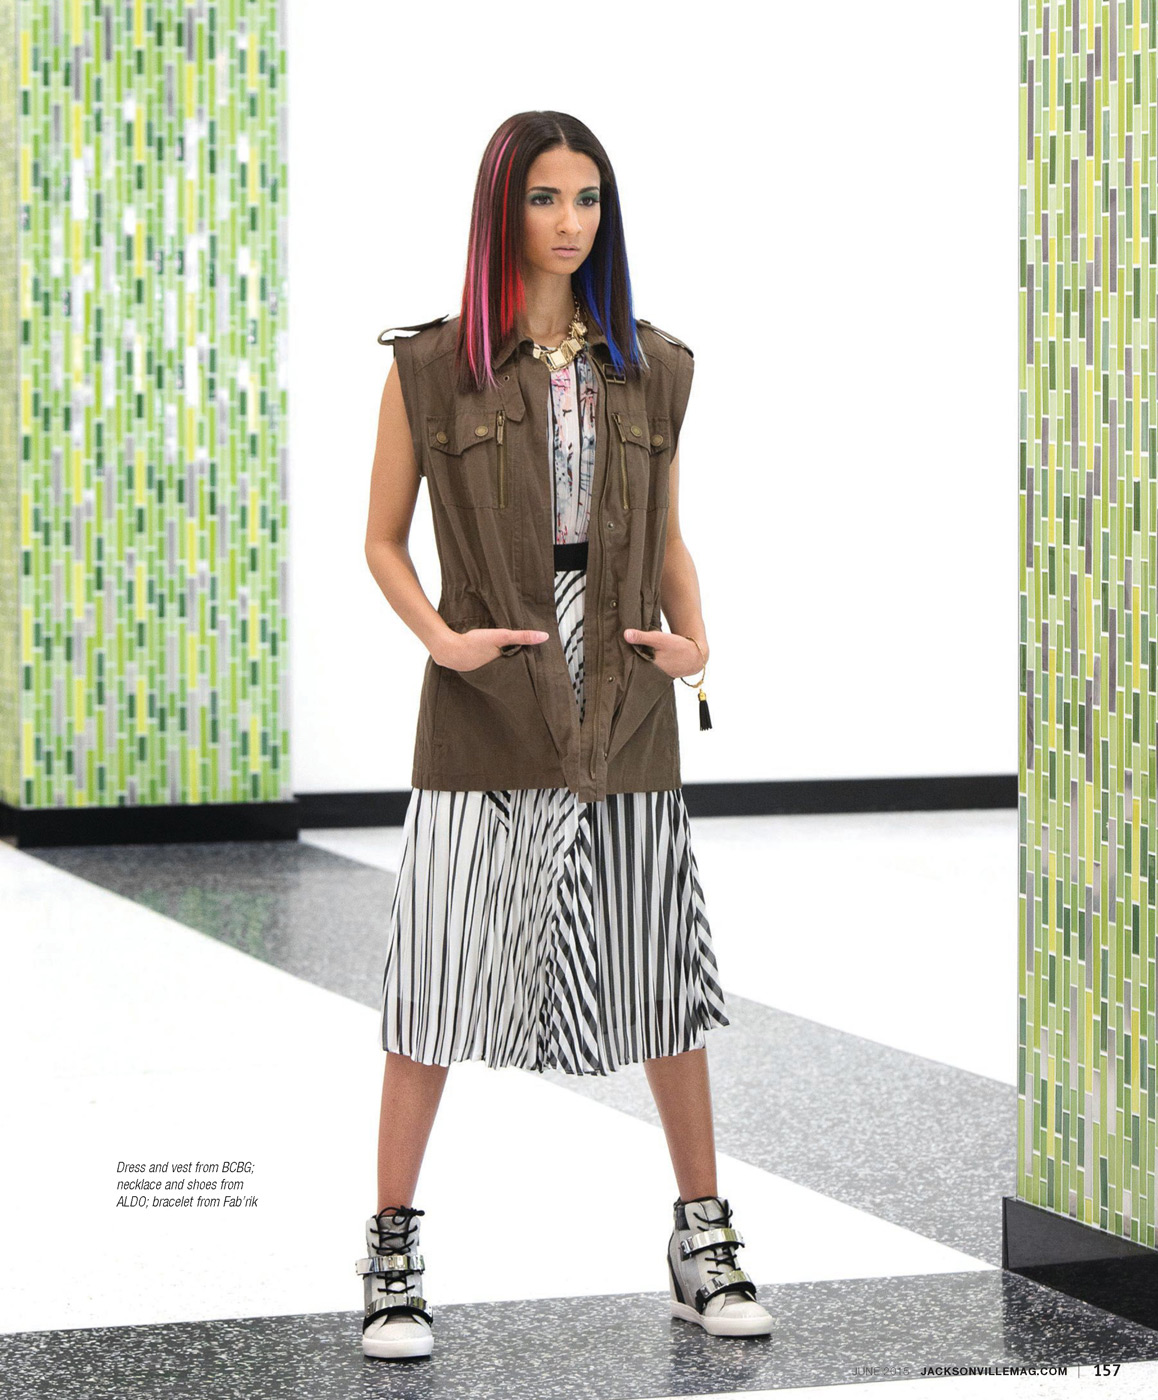 Jacksonville-Magazine-June-2015-Urban-Renewal-Fashion-Editorial-by-Agnes-Lopez-0005@2x